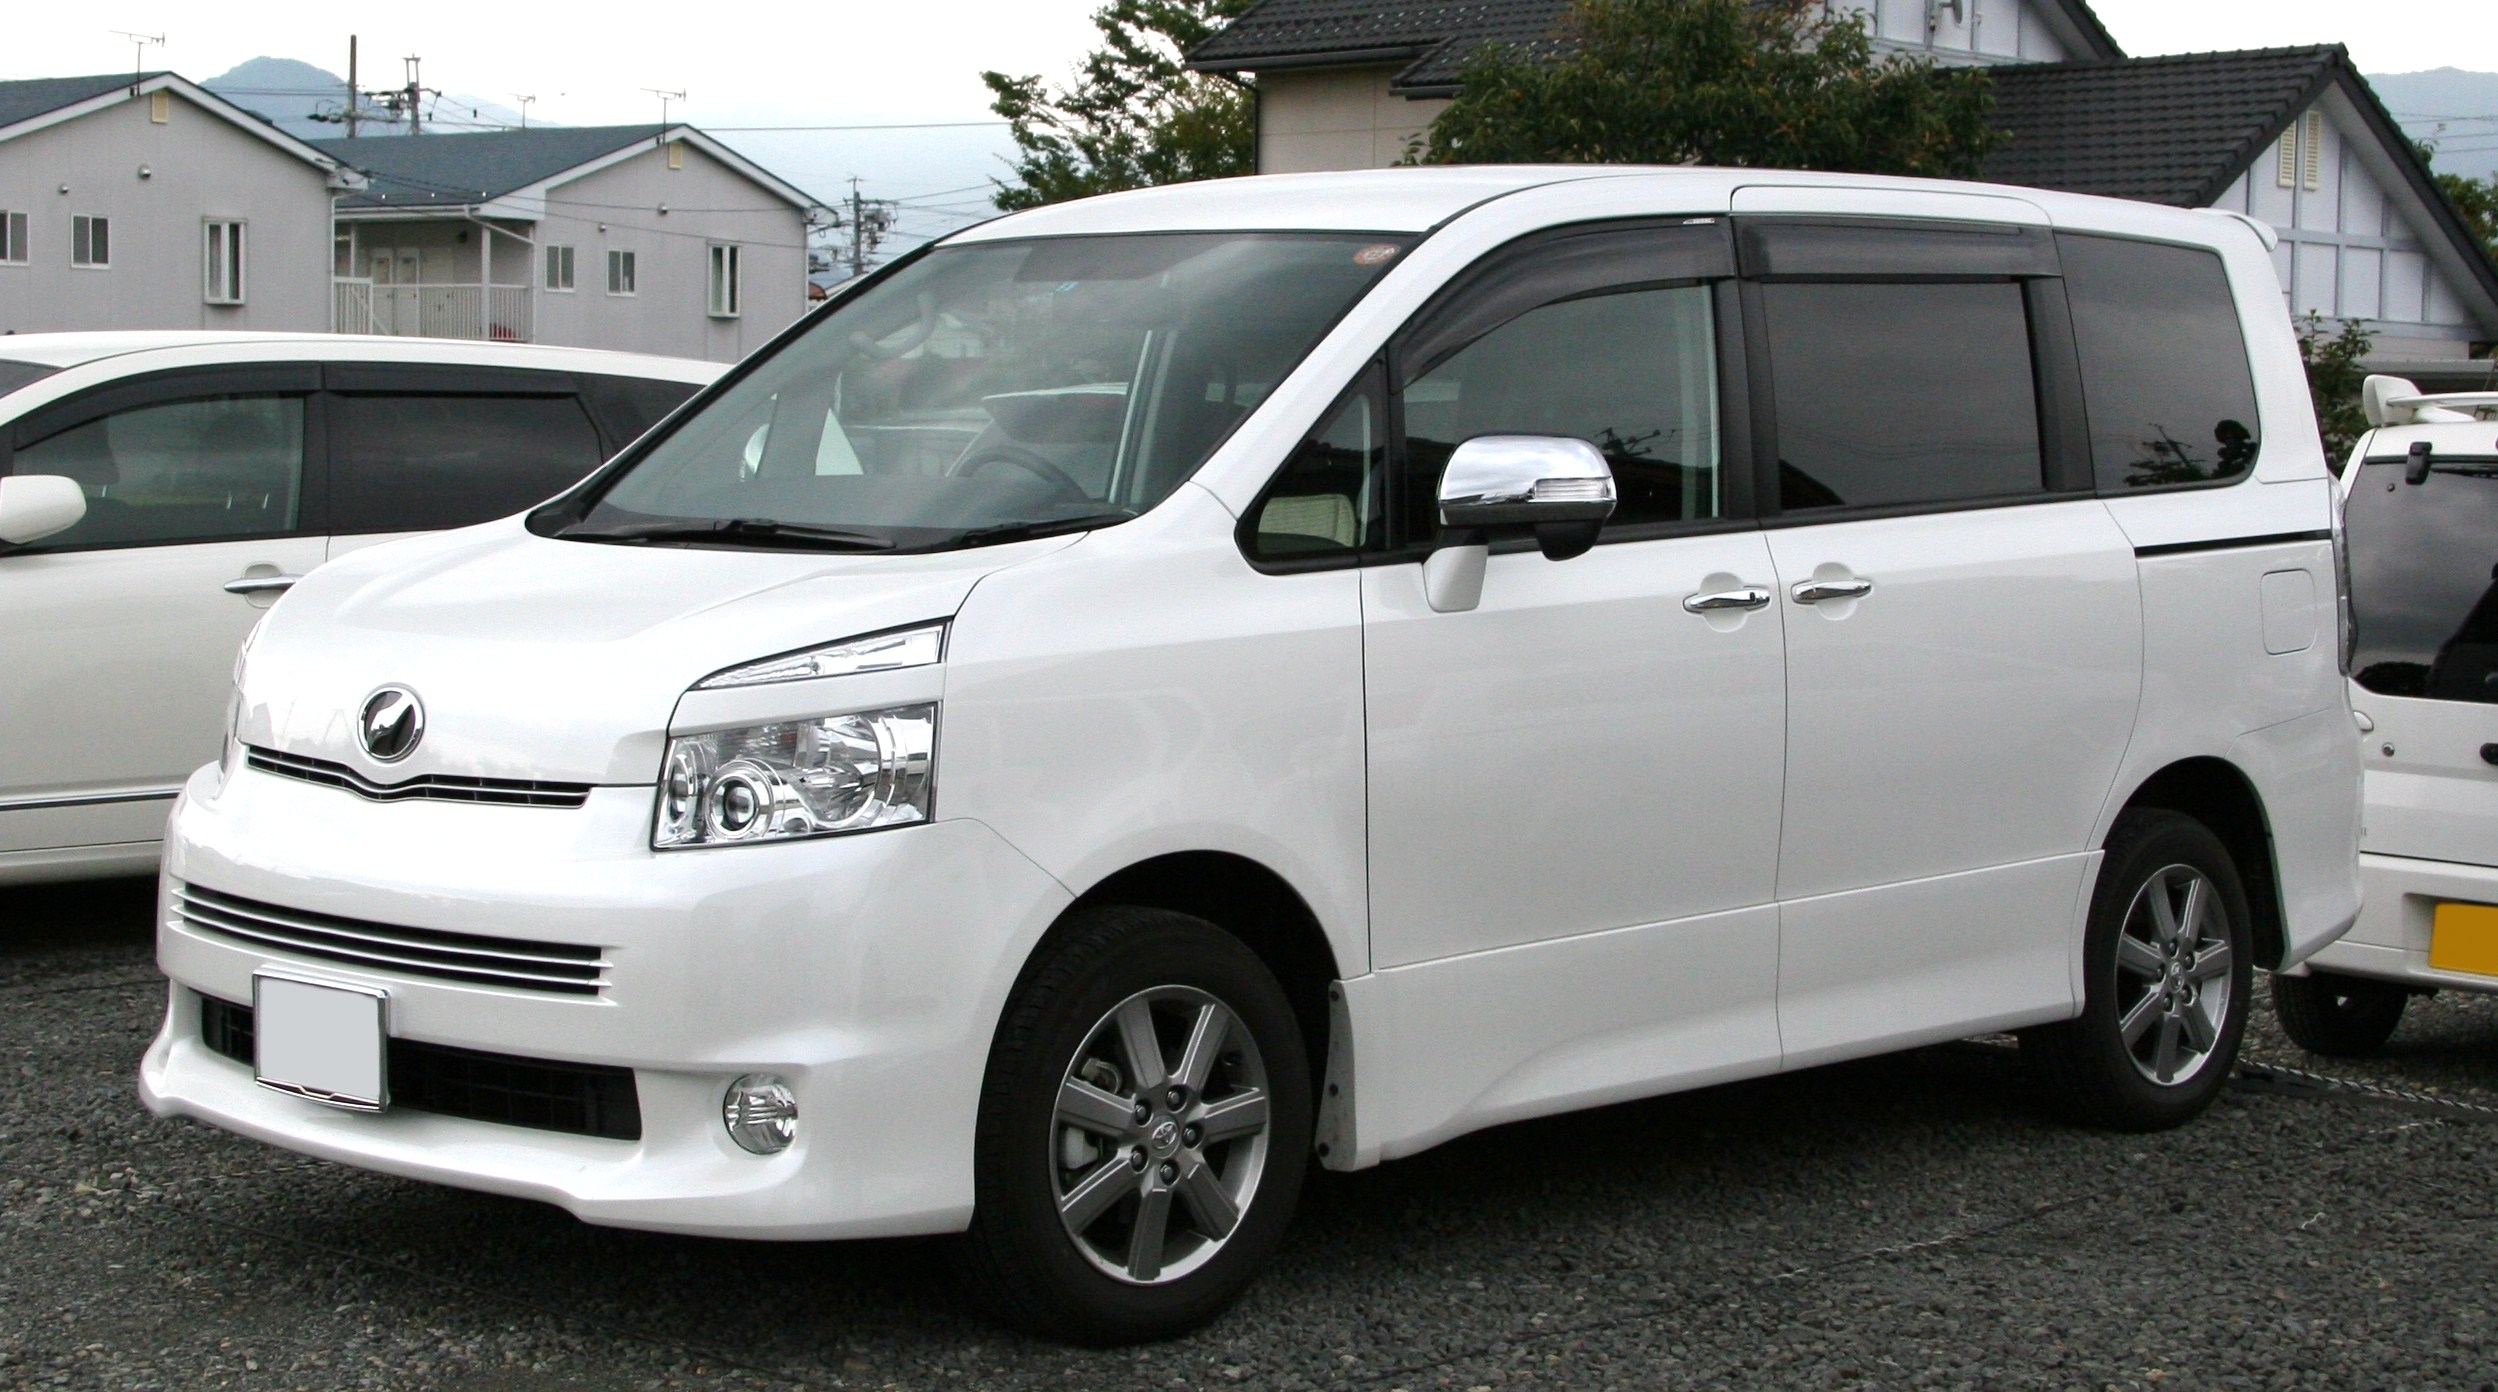 Toyota Voxy 2007 photo - 4